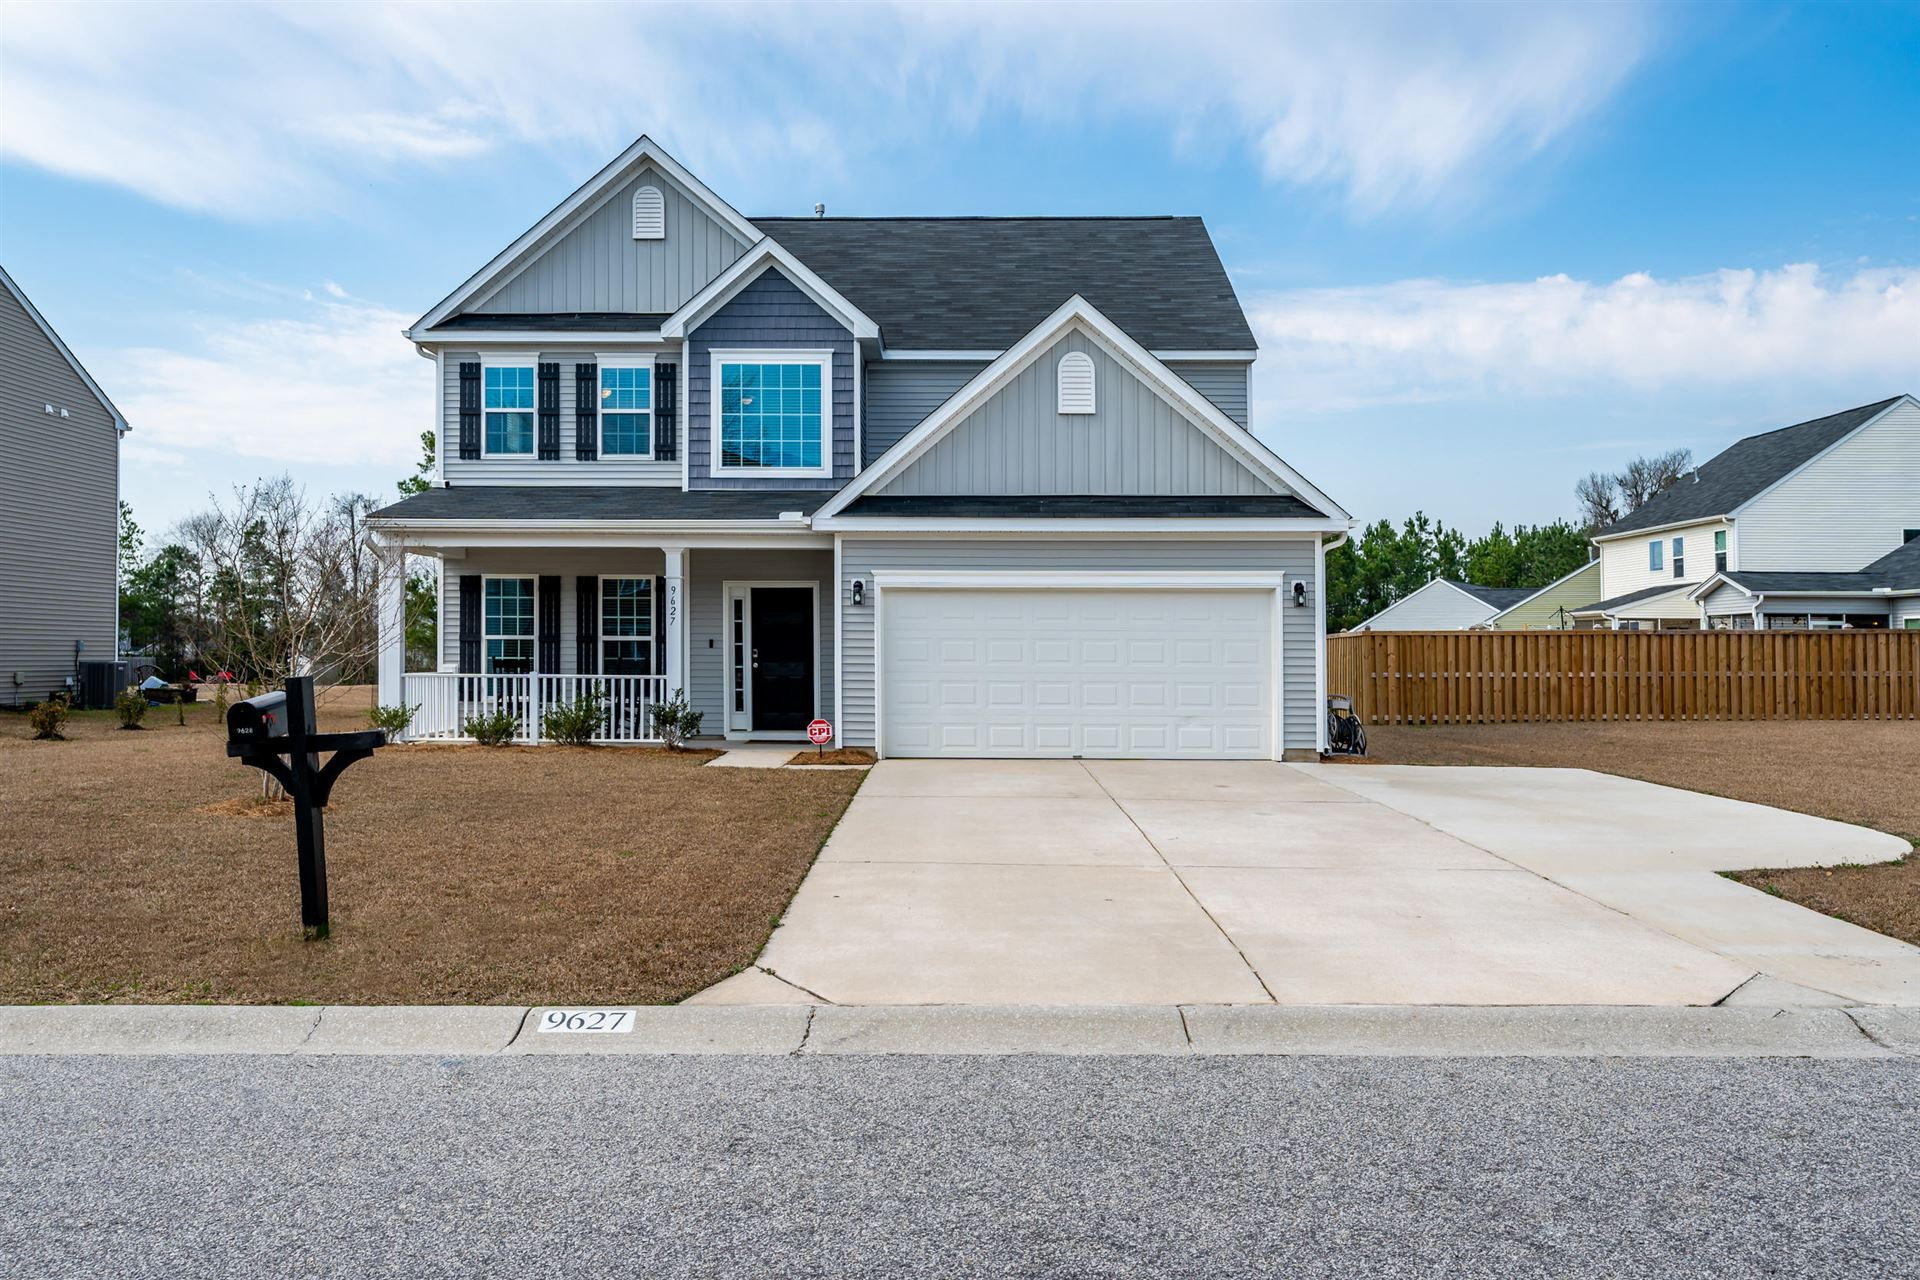 Photo of 9627 Stockport Circle, Summerville, SC 29485 (MLS # 21005195)